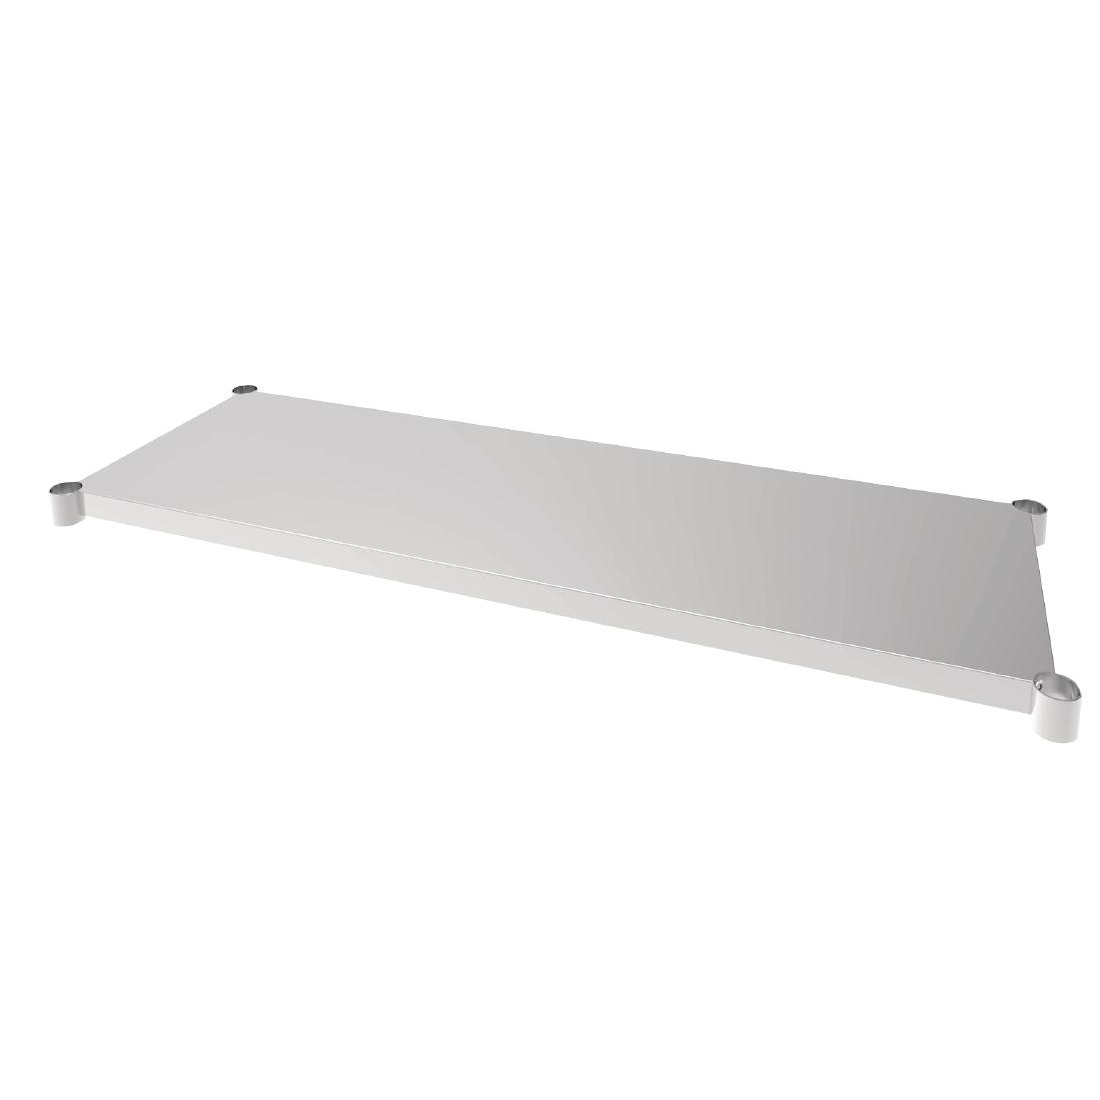 Vogue Stainless Steel Table Shelf 600x1500mm